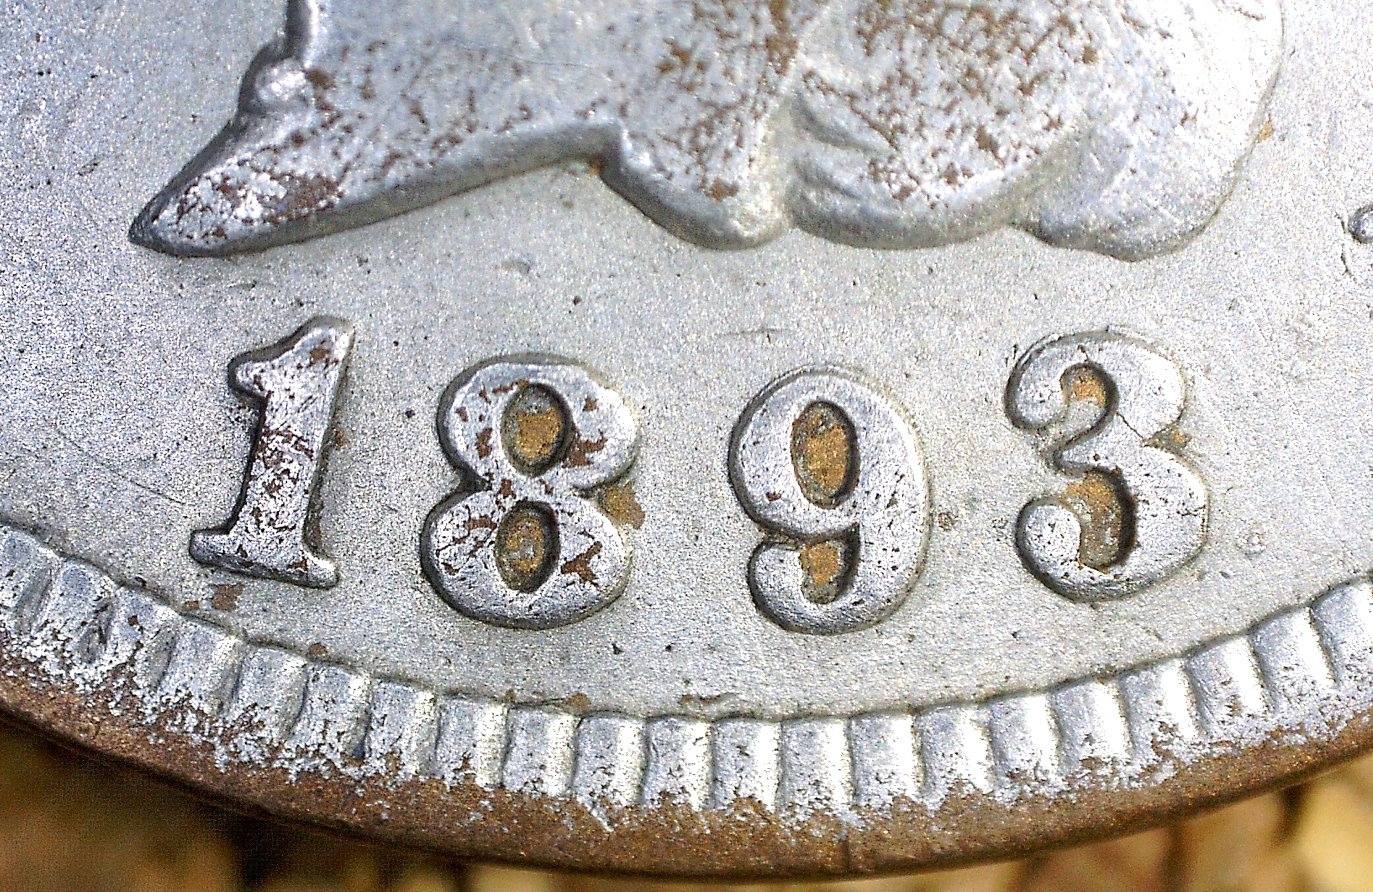 1893 RPD-009 - Indian Head Penny - Photo by David Killough